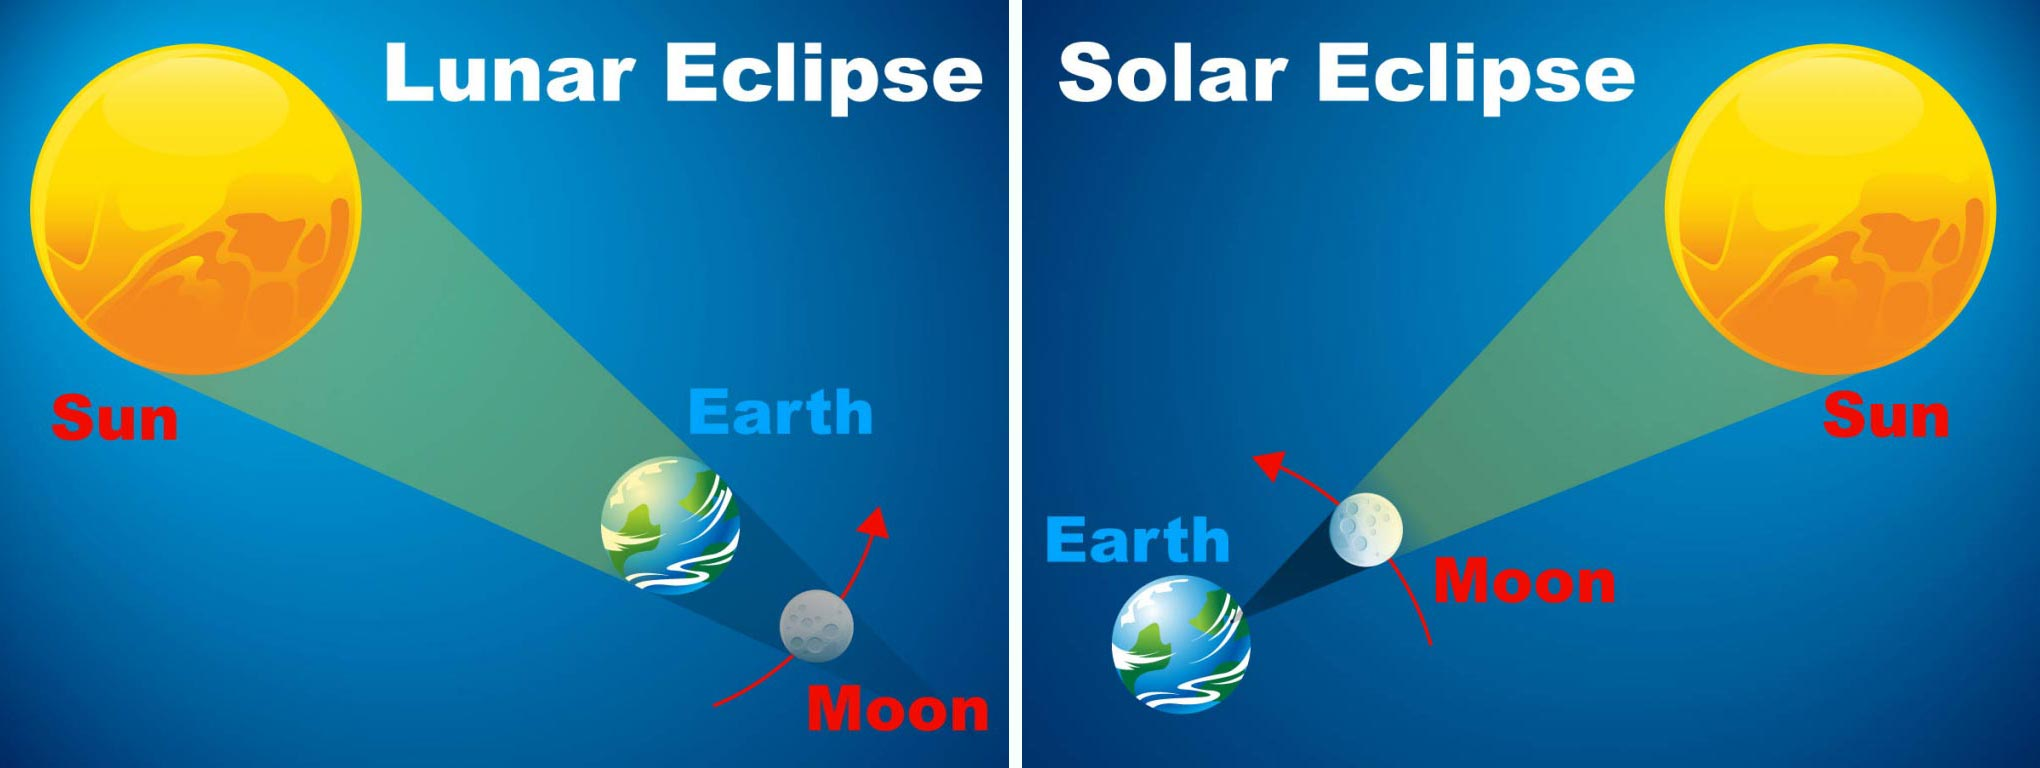 Two illustrations representing eclipses. One represents a Lunar Eclipse, with the sun shining on the earth which is in front of the moon. The second represents a Solar Eclipse, with the sun shining on the moon which is in front of the earth.